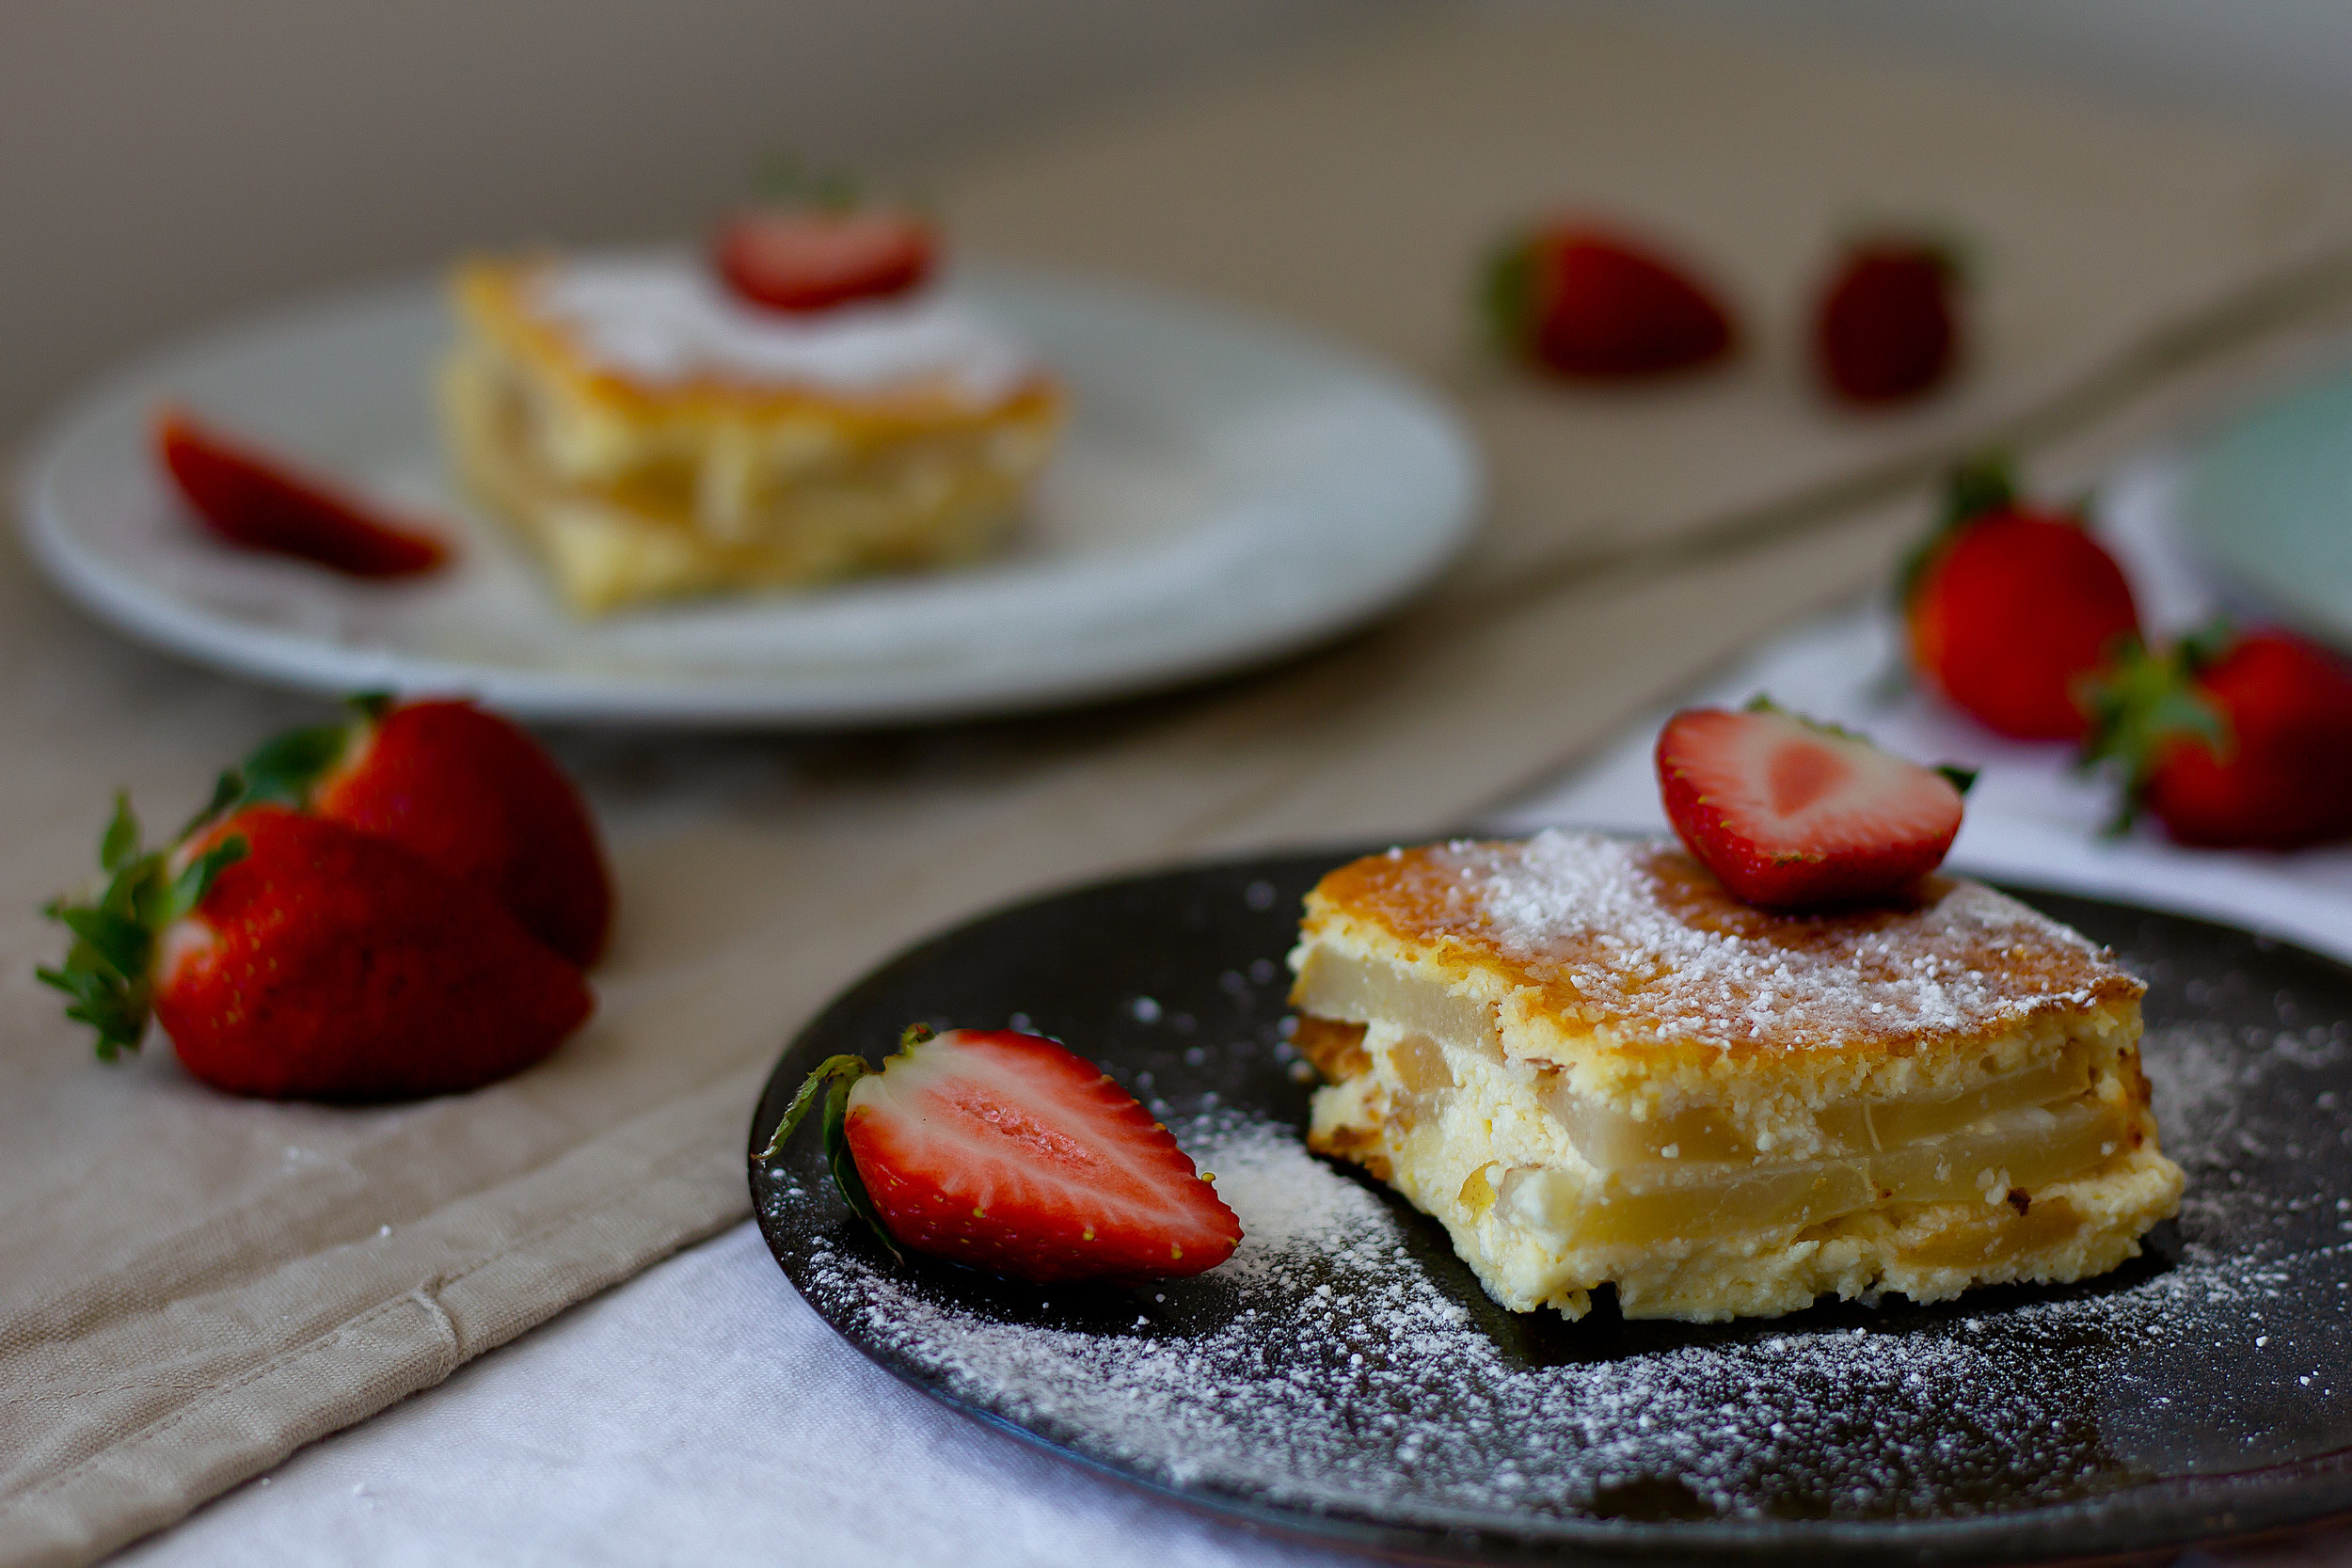 Easy-Ricotta-Cake-With-Pear-And-Strawberries-Neperfect-Blog-Natasha-Manukhina-Darmandrail-8.JPG